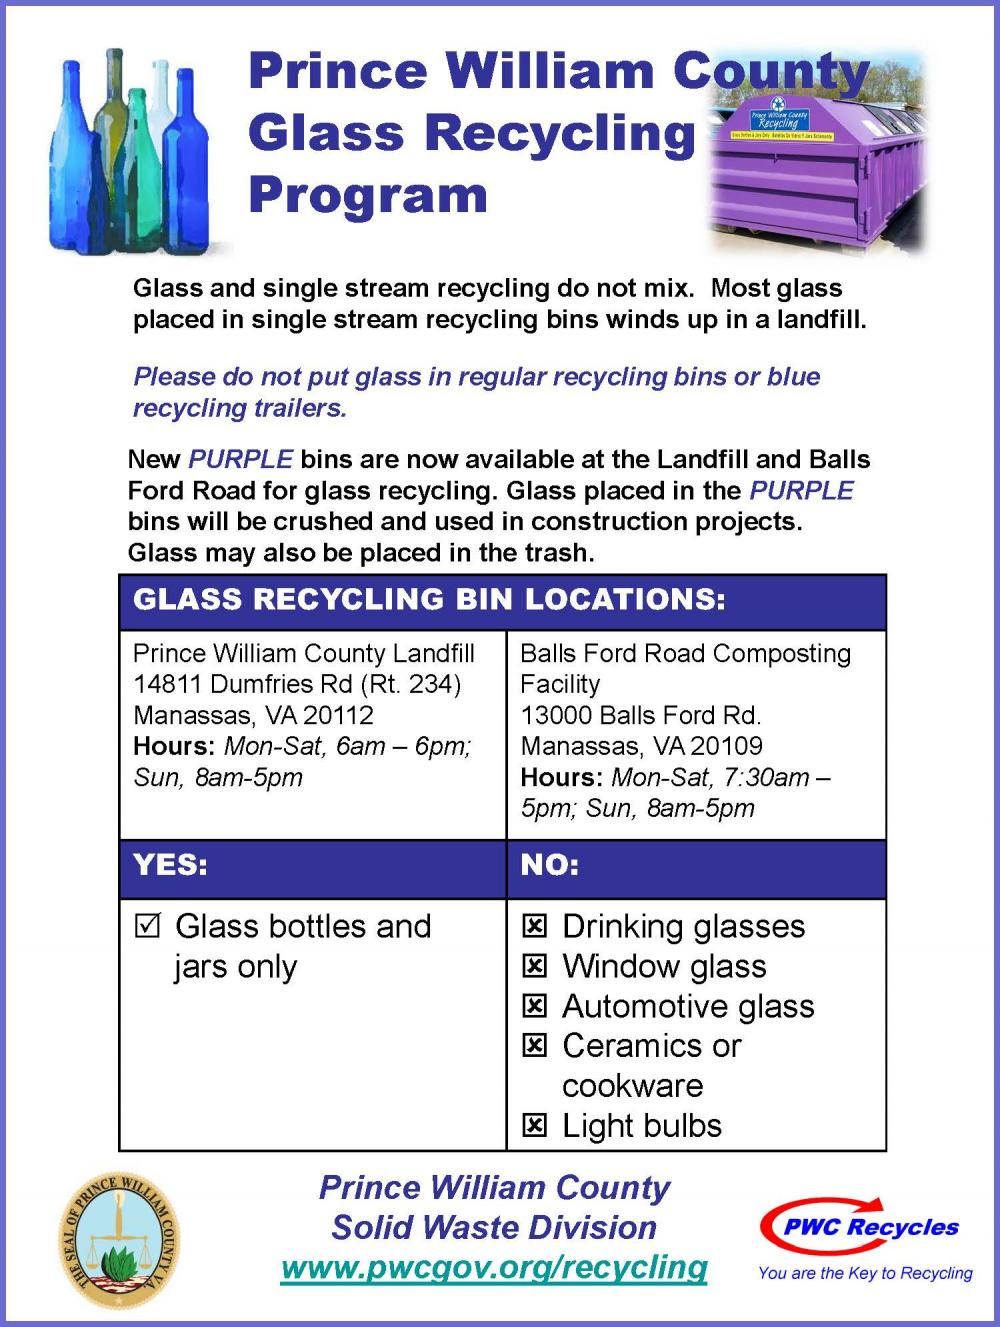 Prince William County Glass Recycling Program | Town of